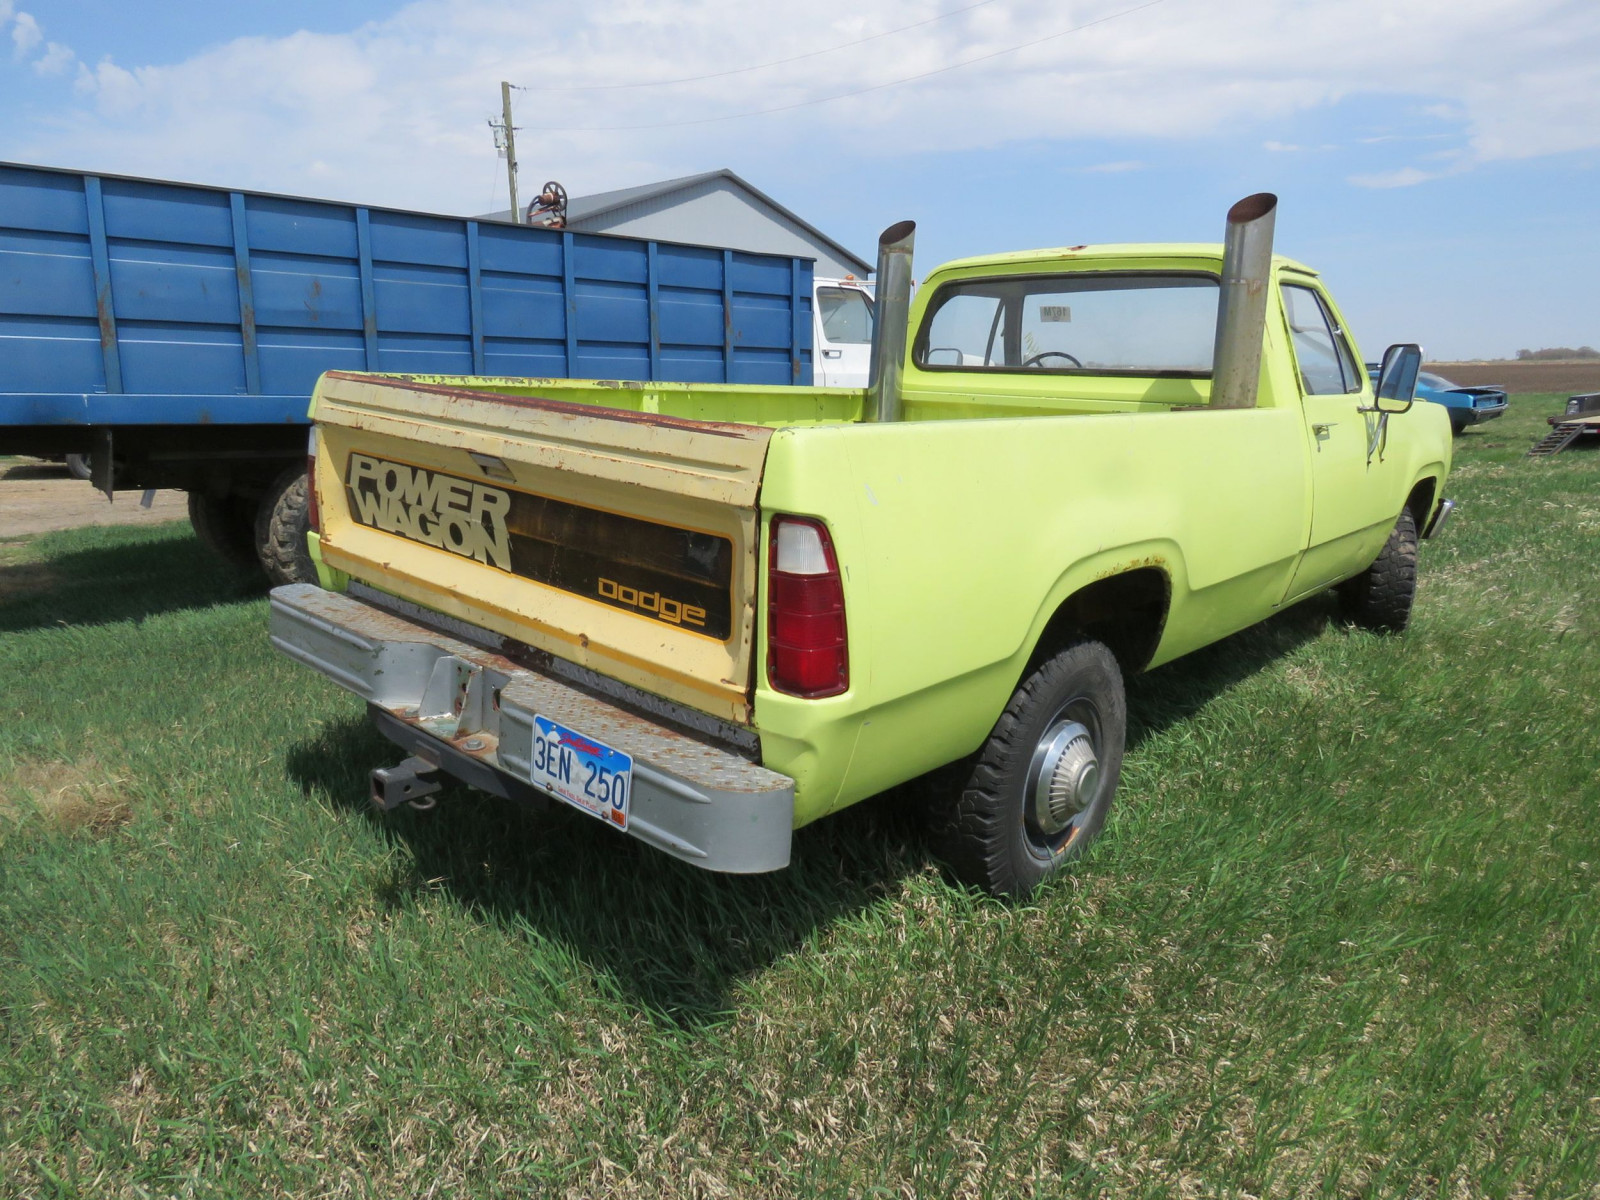 1977 Dodge Power Wagon - Image 4